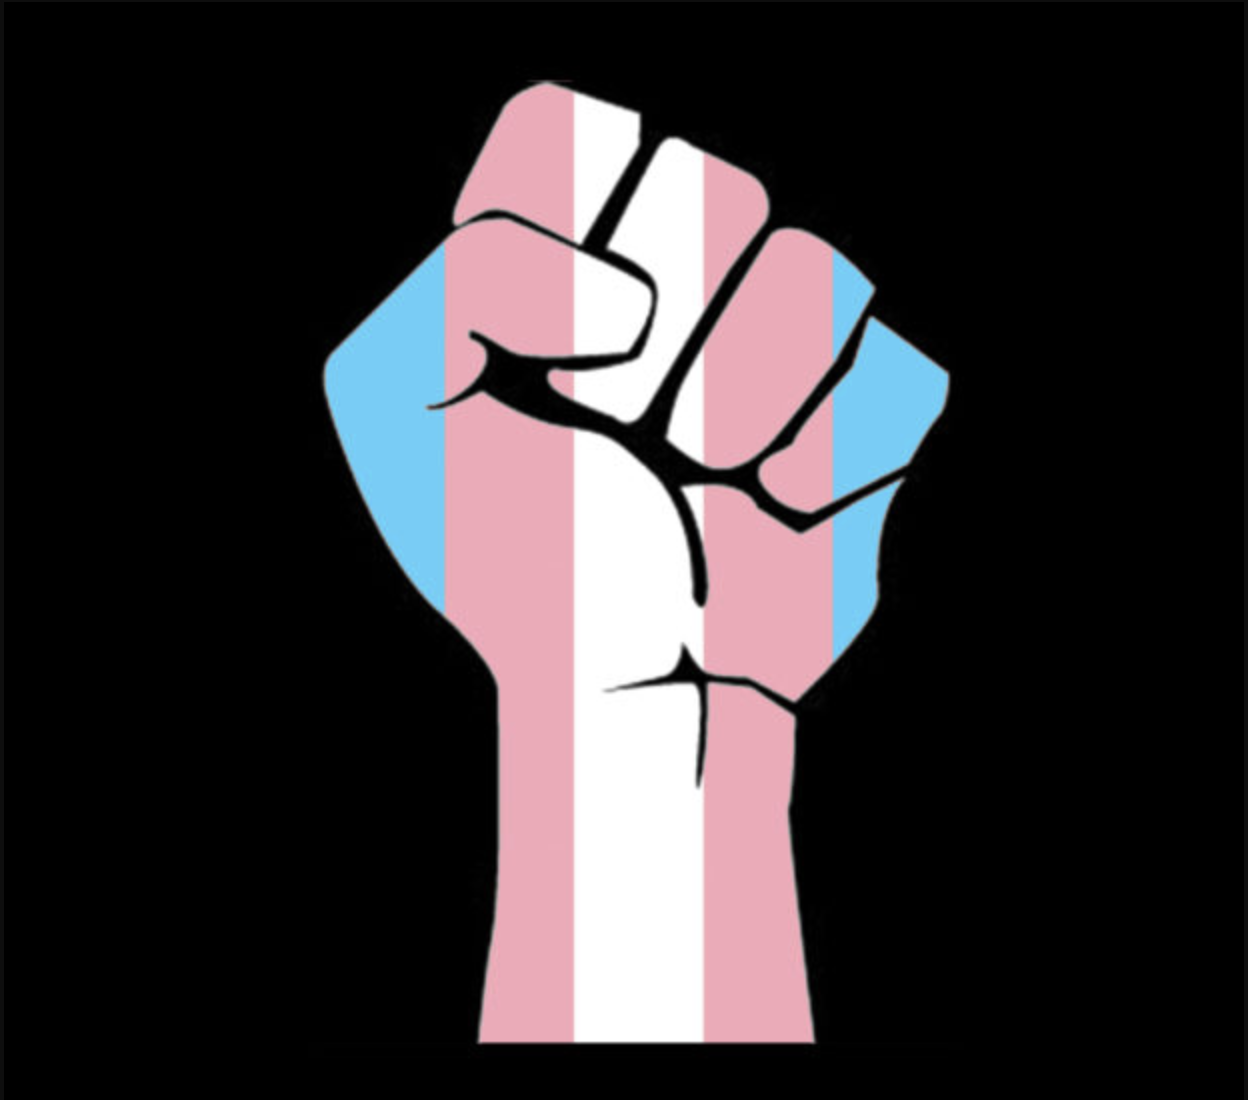 Drawing of upraised fist with trans flag colors